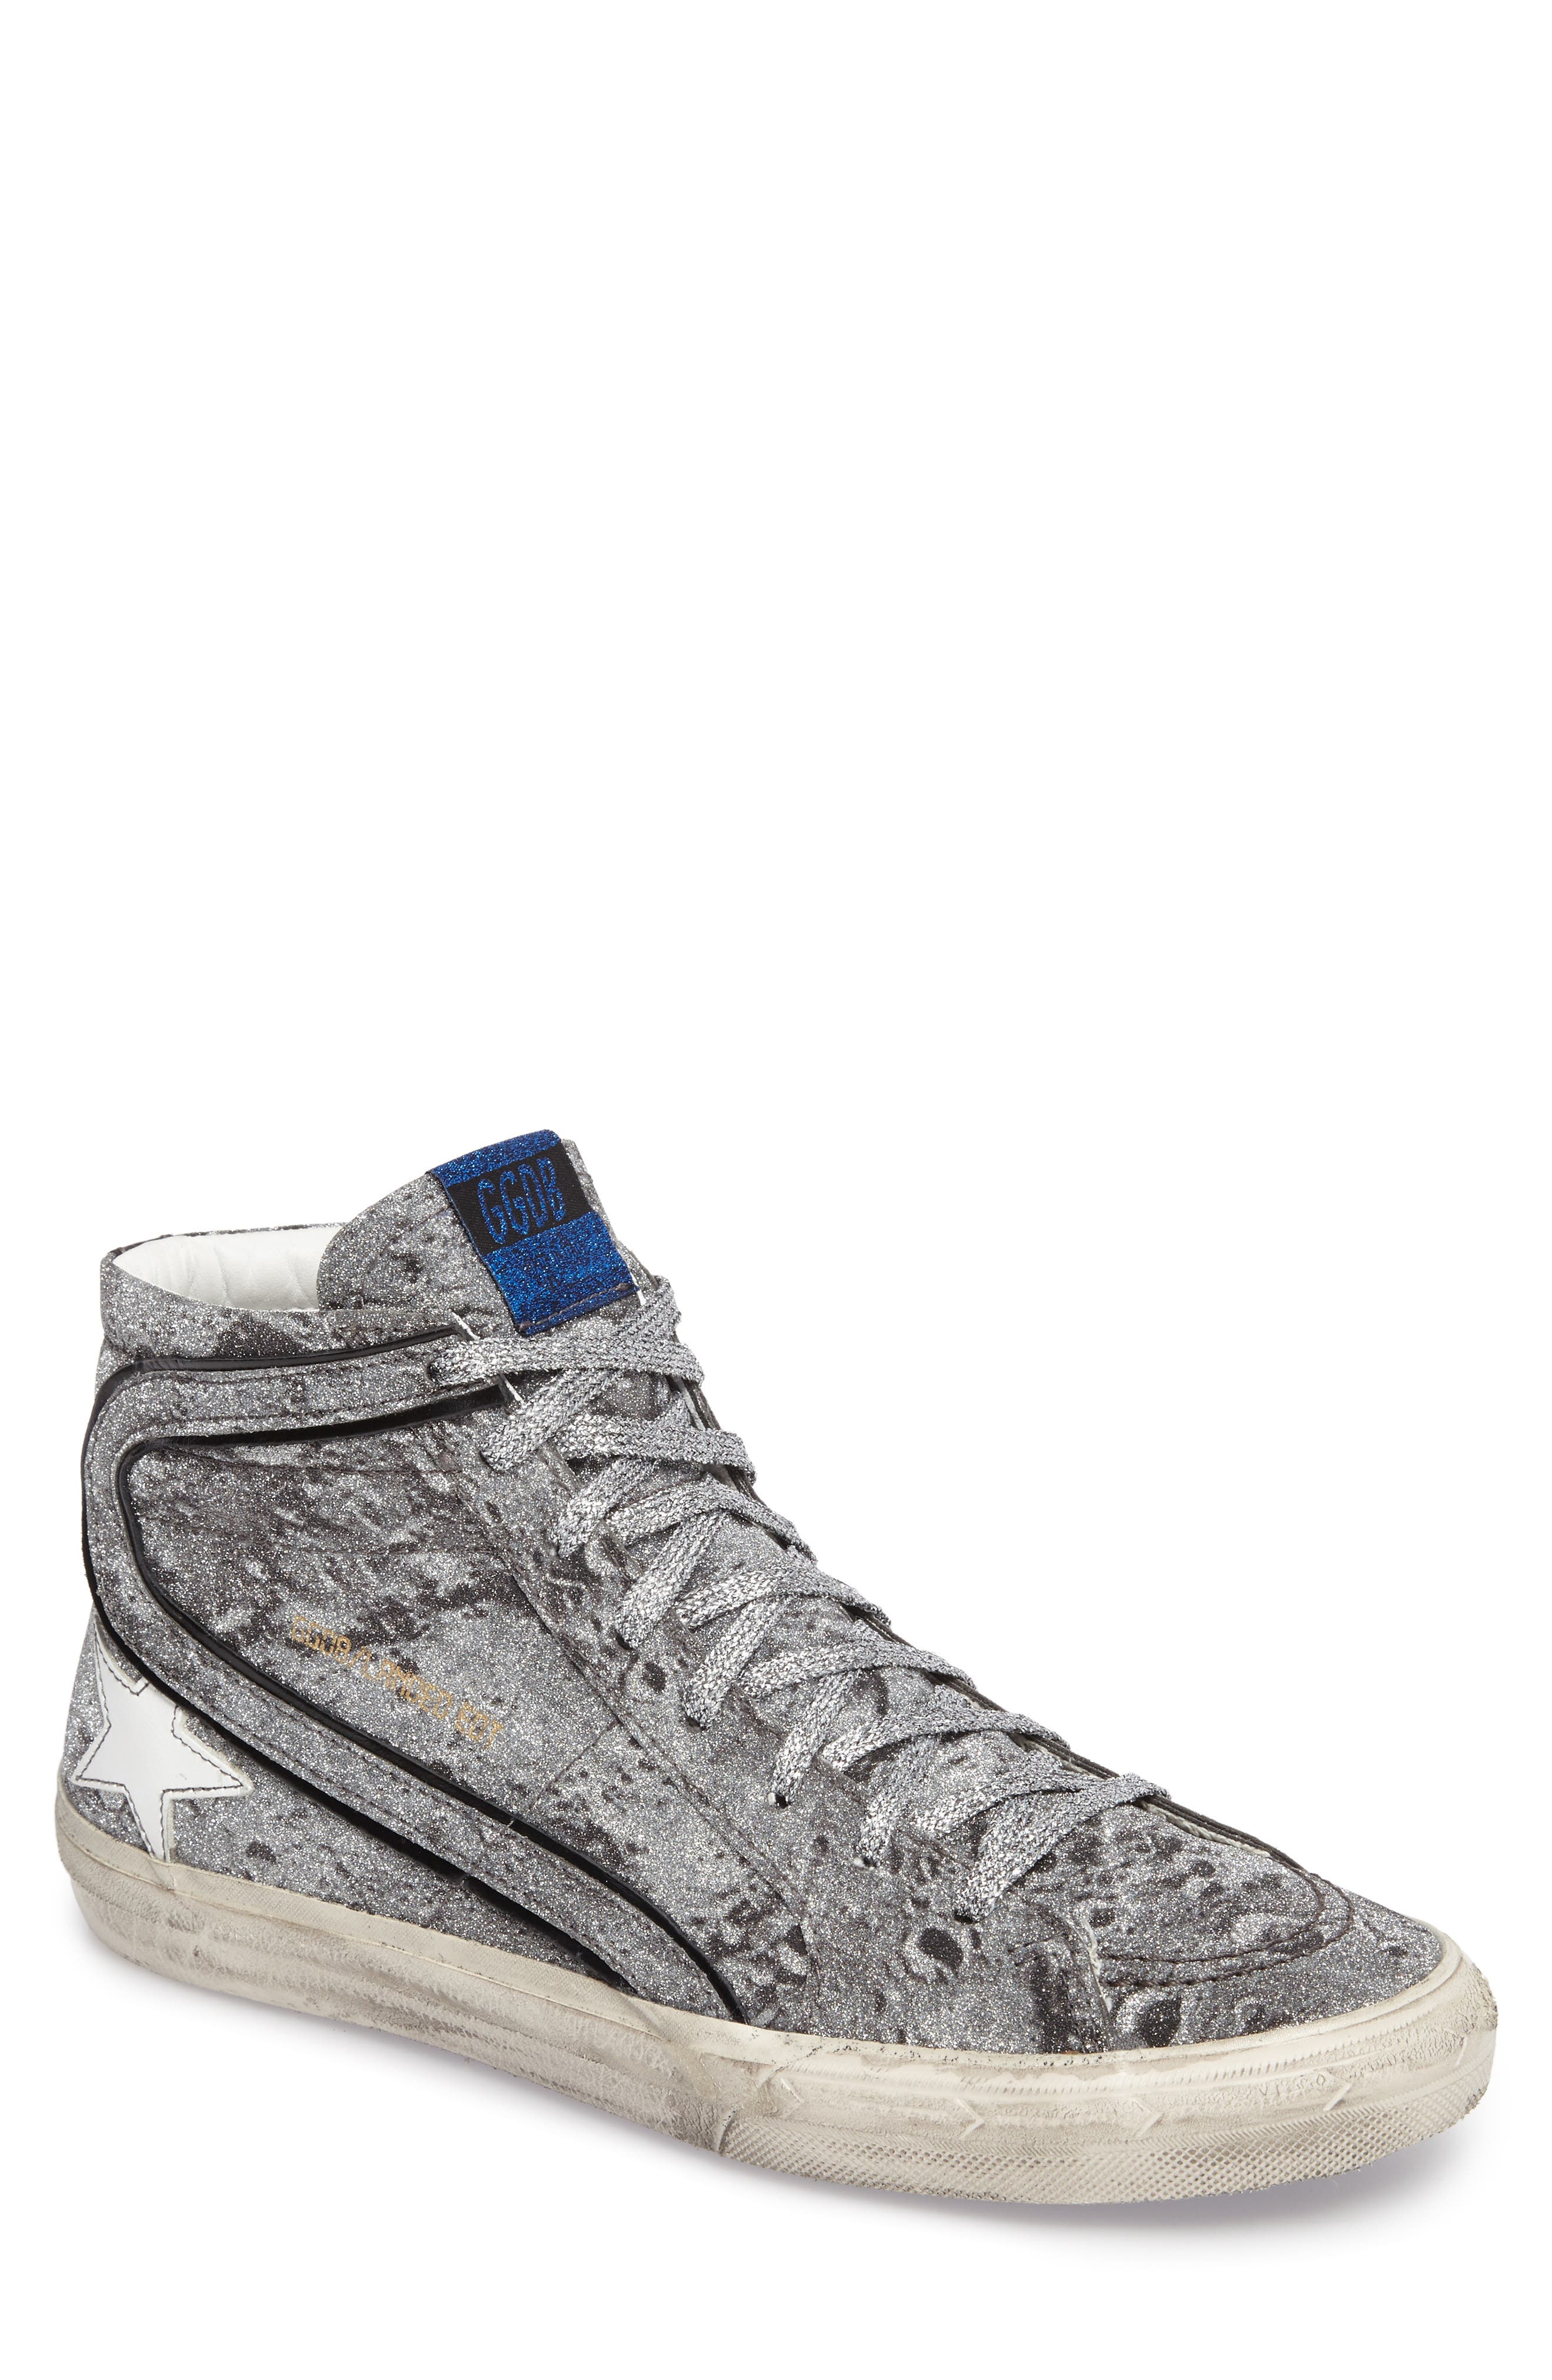 Alternate Image 1 Selected - Golden Goose Slide Sneaker (Men)